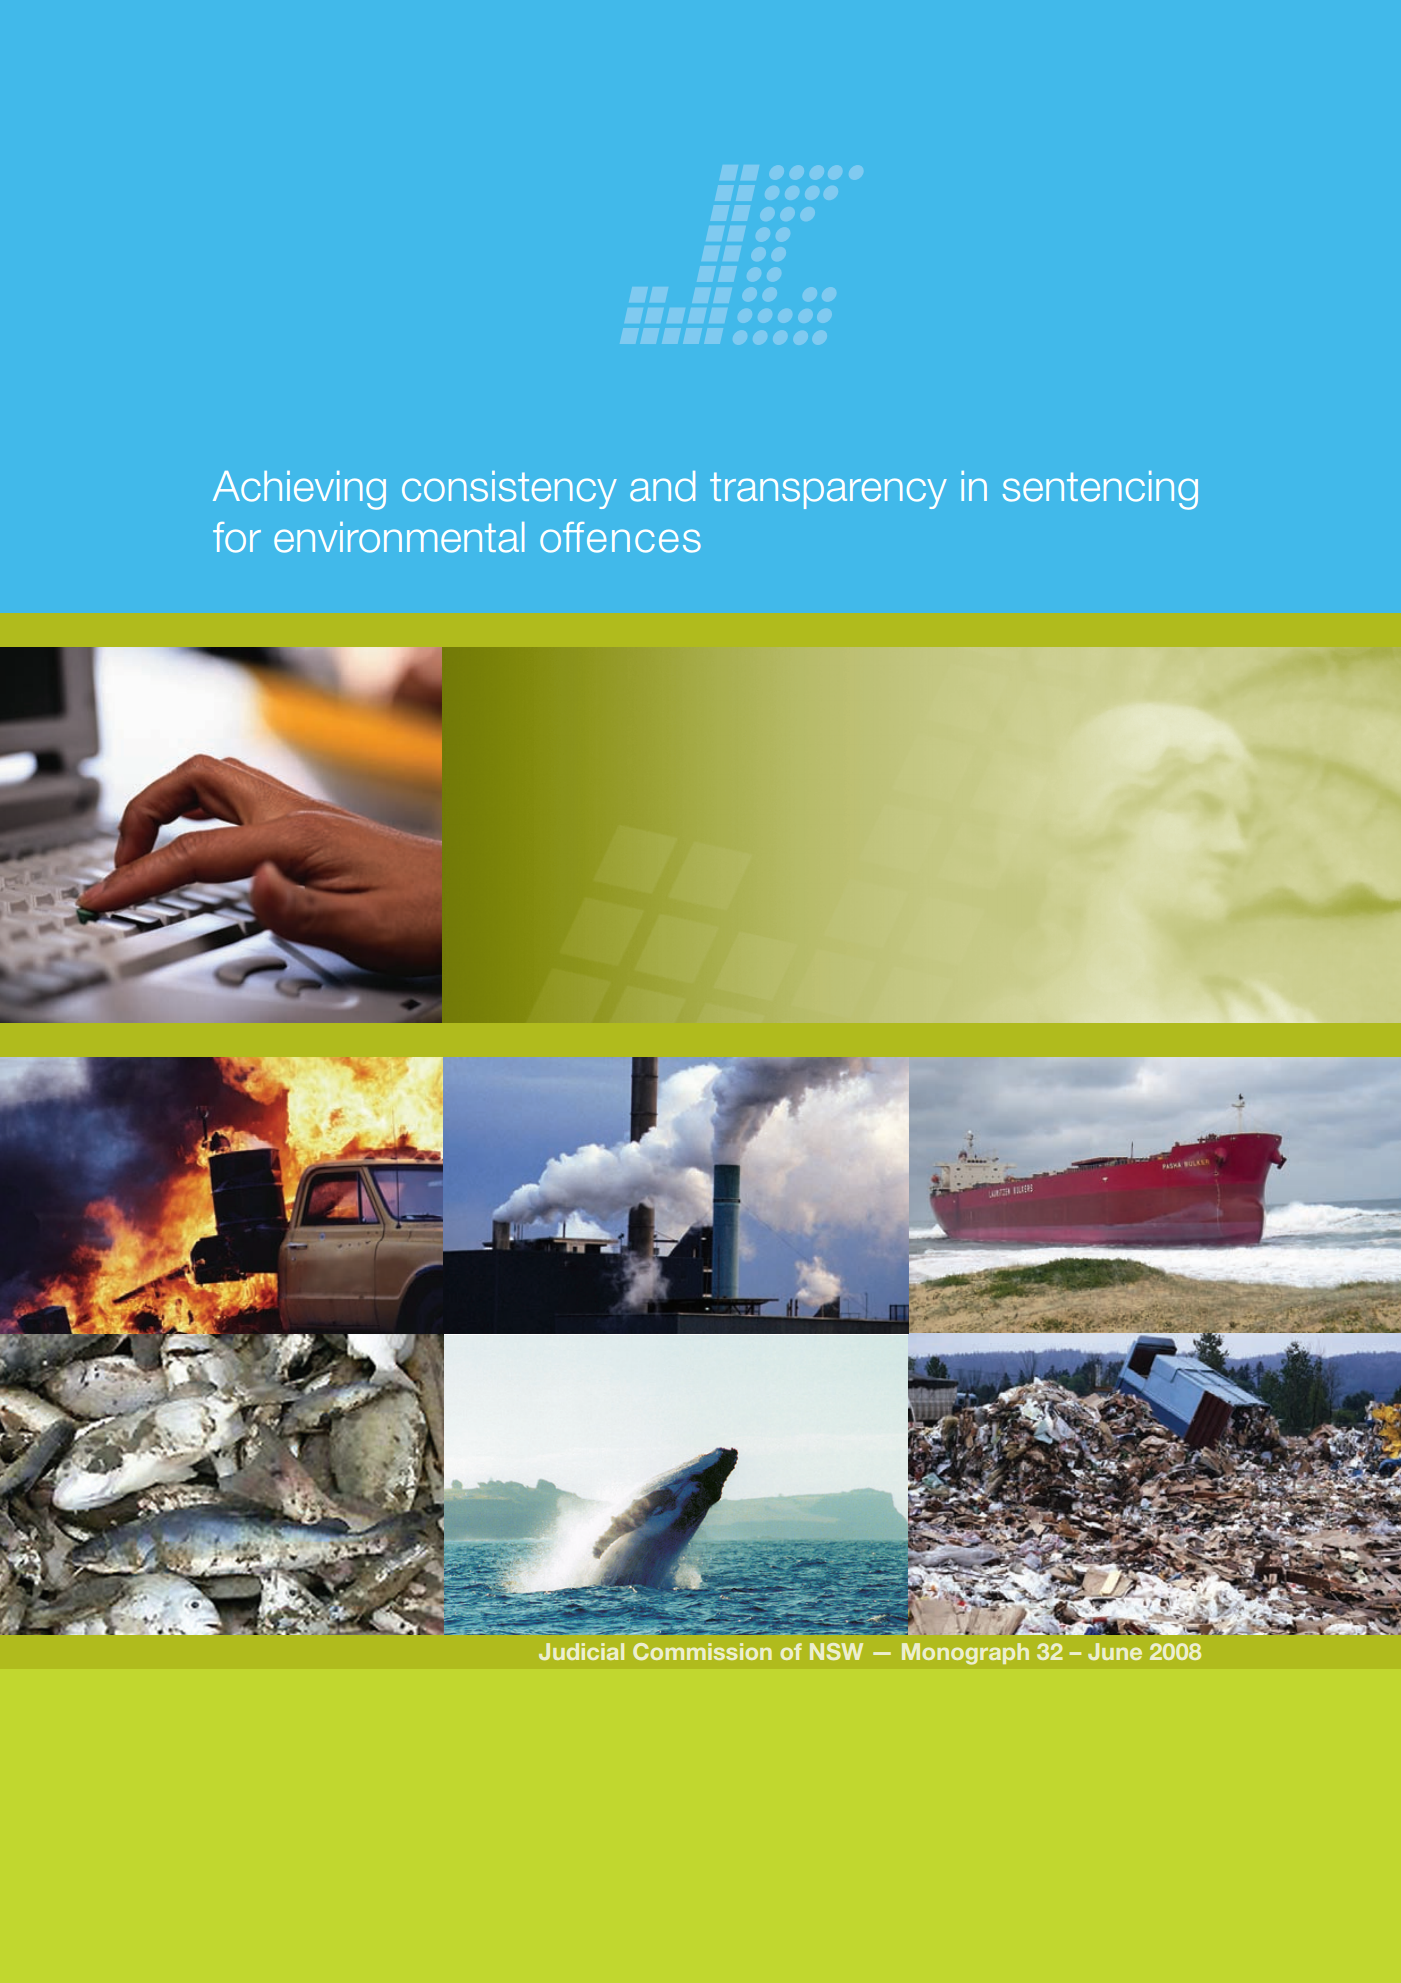 Research Monograph 32 Cover - Achieving consistency and transparency in sentencing for environmental offences